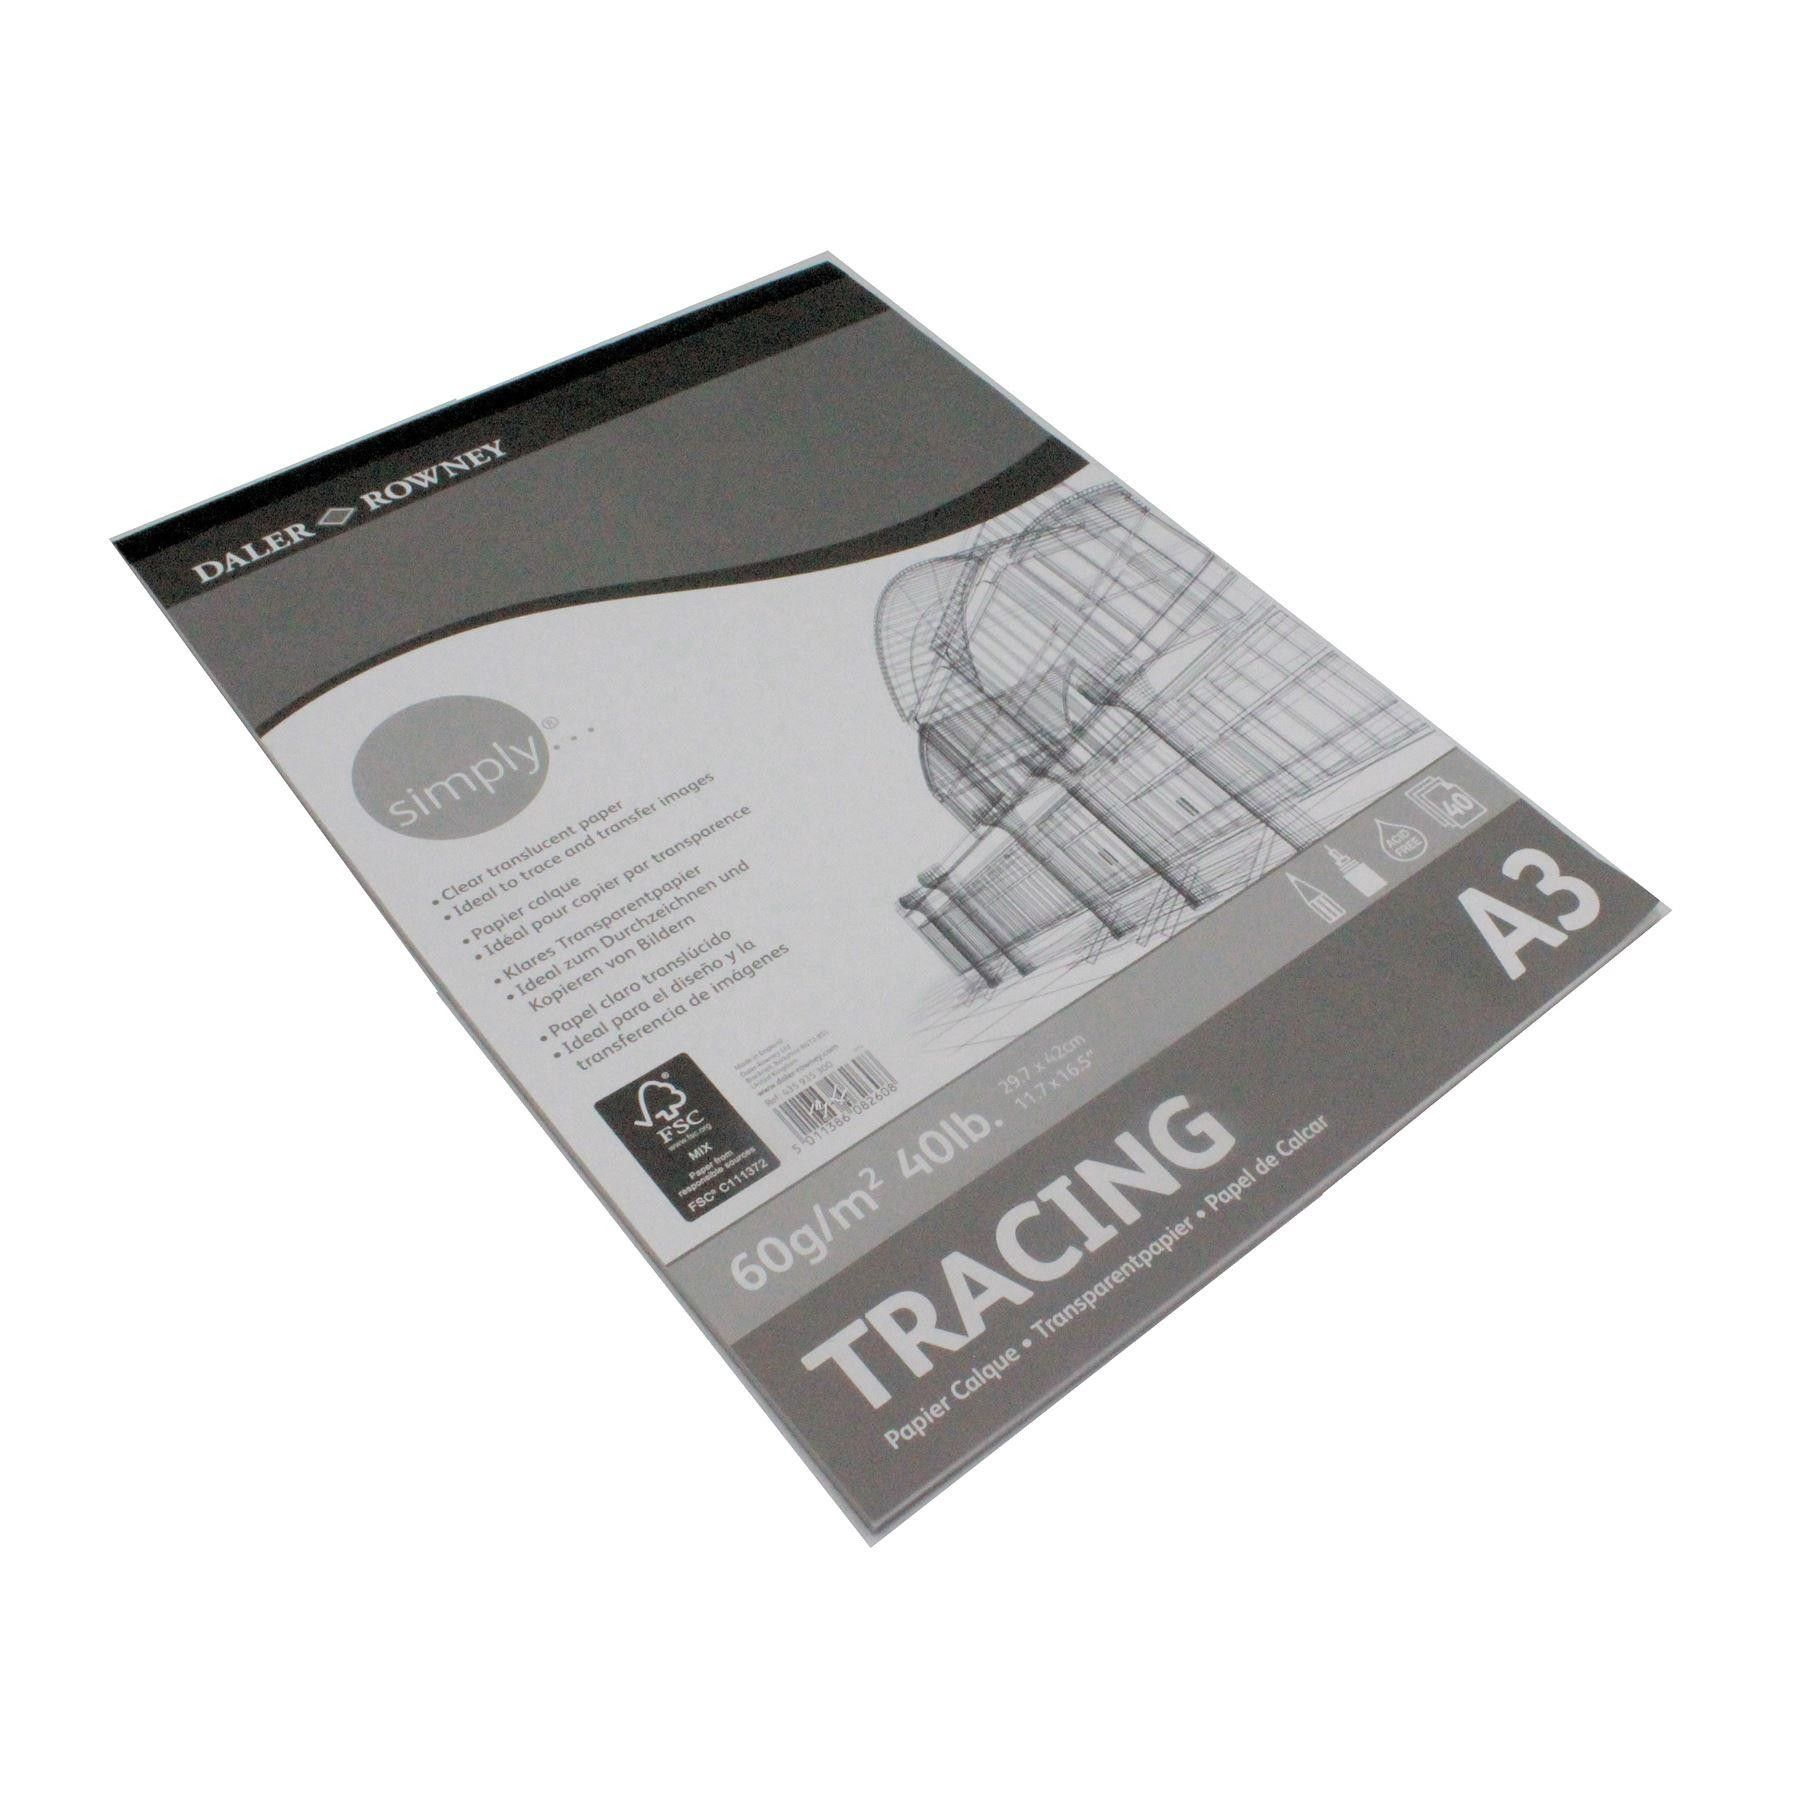 Canson Xl Series Mix Media Pad Tracing Paper Pad 60gsm A3 Daler Rowney Simply 40 Sheets In 2020